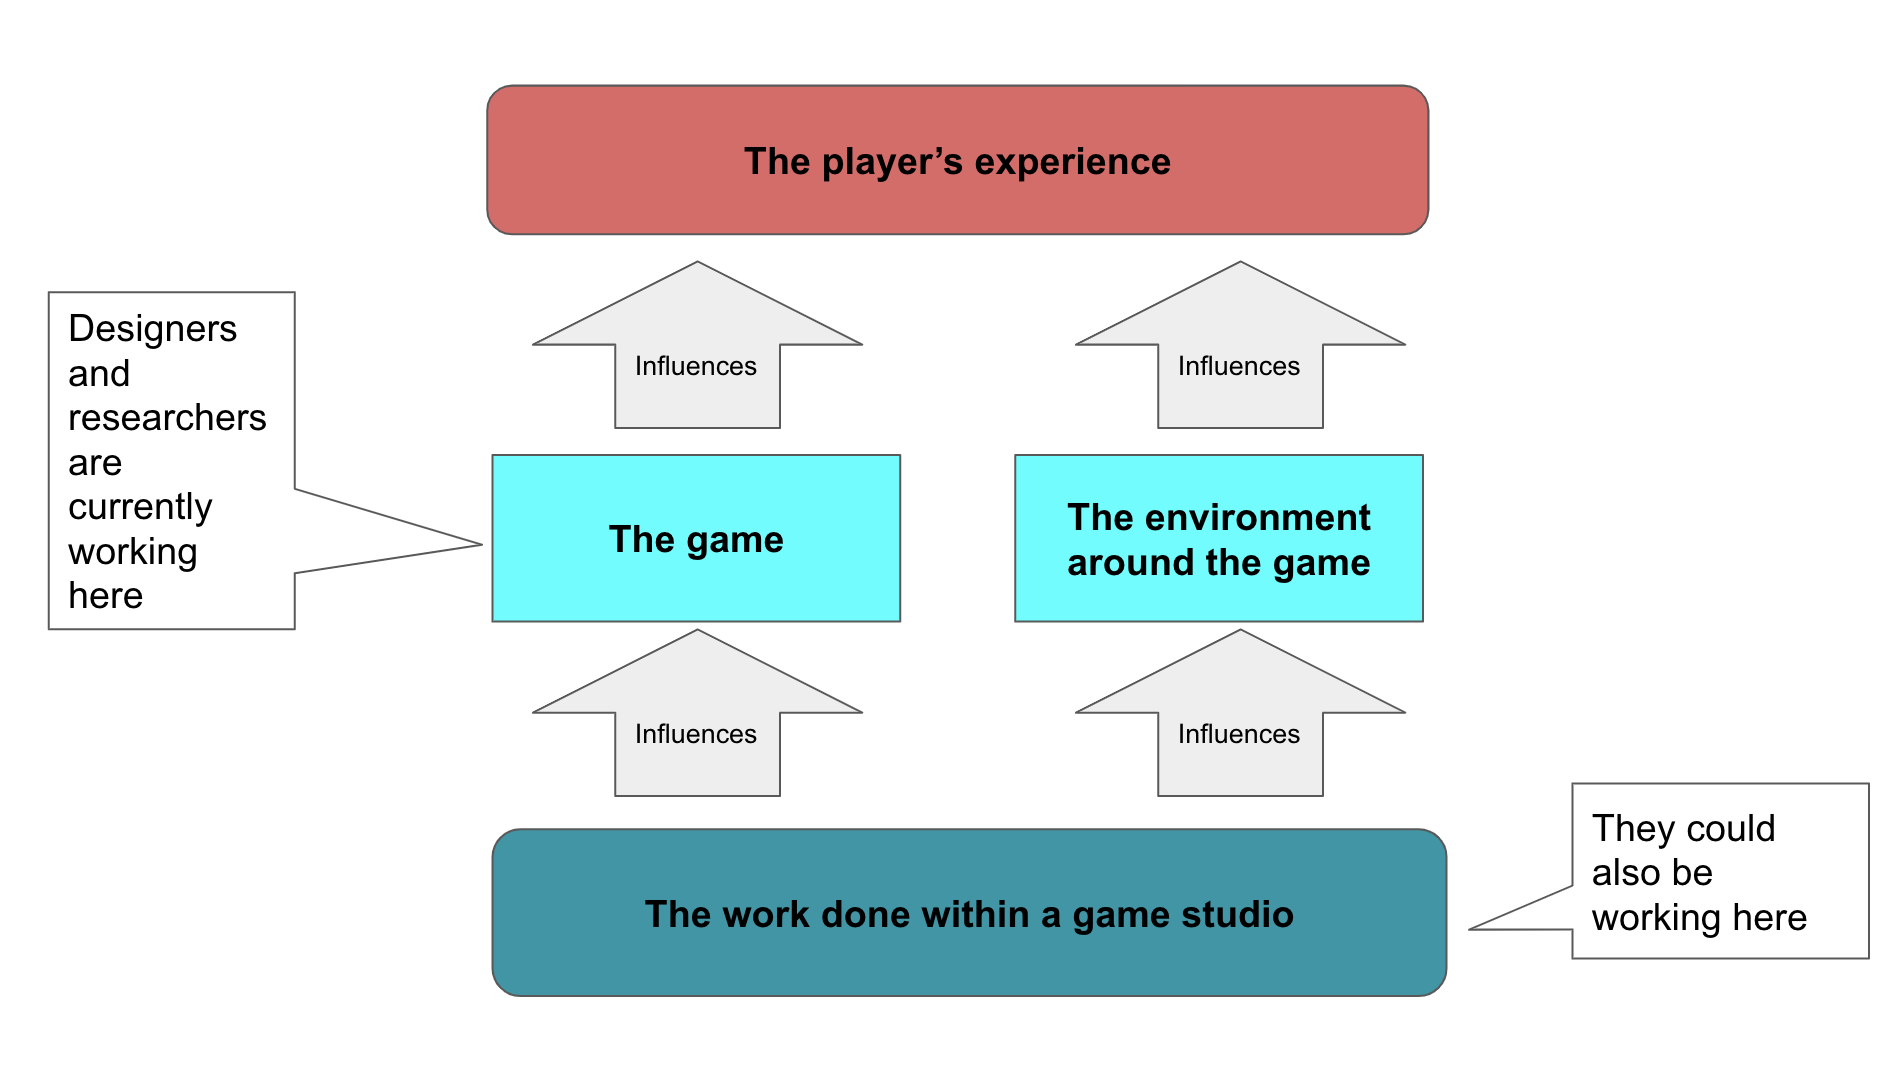 Service Design offers more opportunities to influence game development